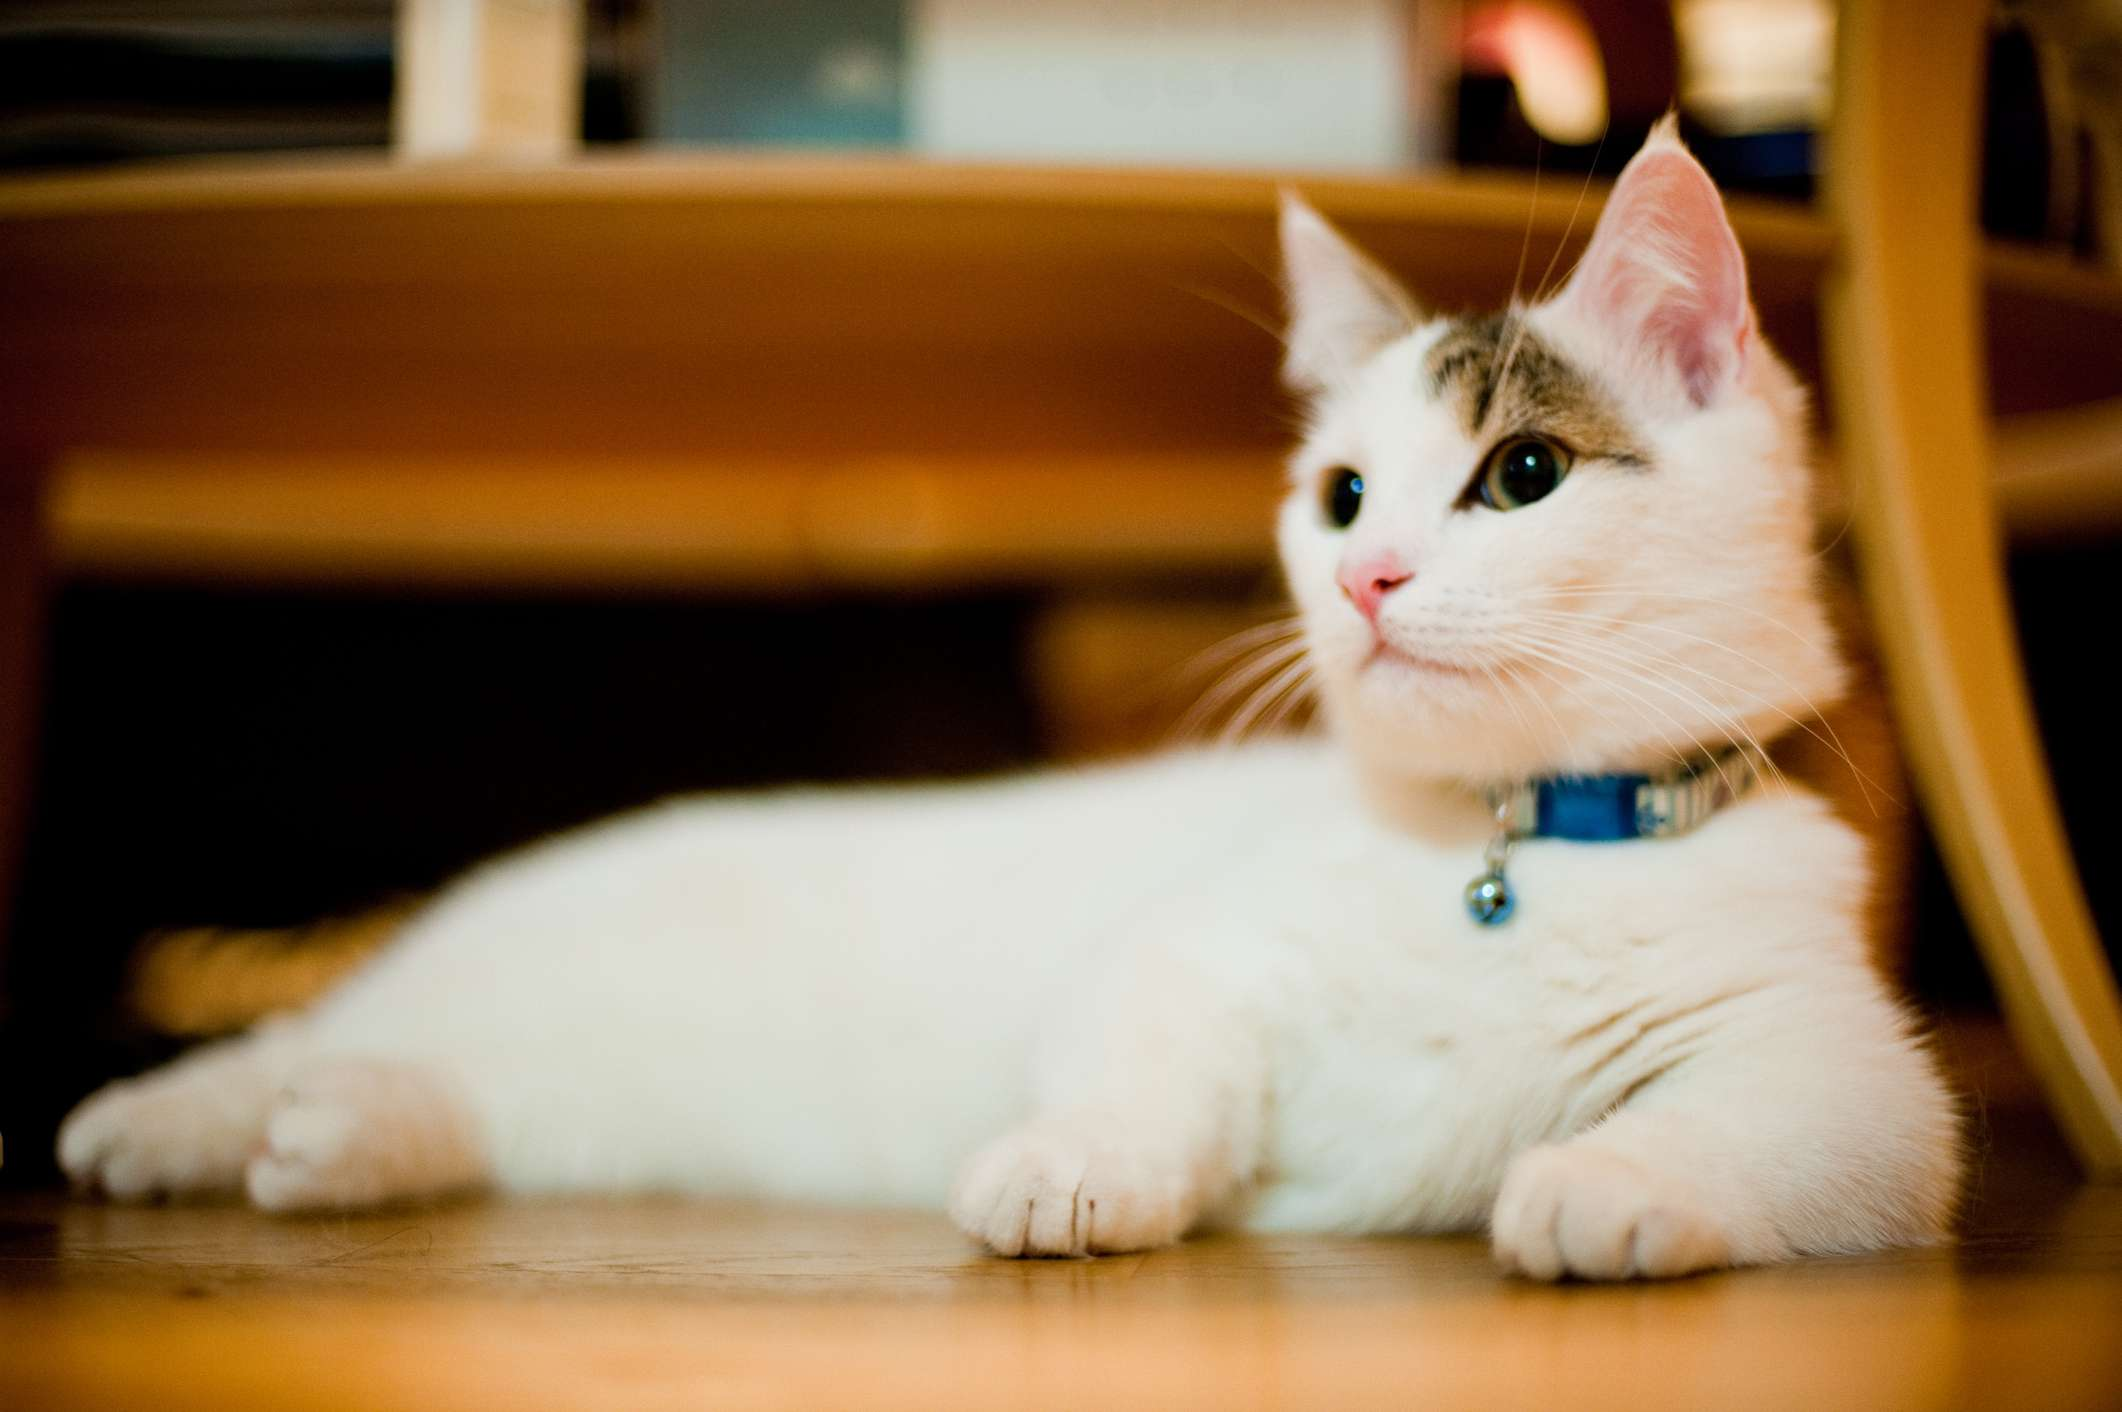 A white munchkin cat laying on the wood floor.